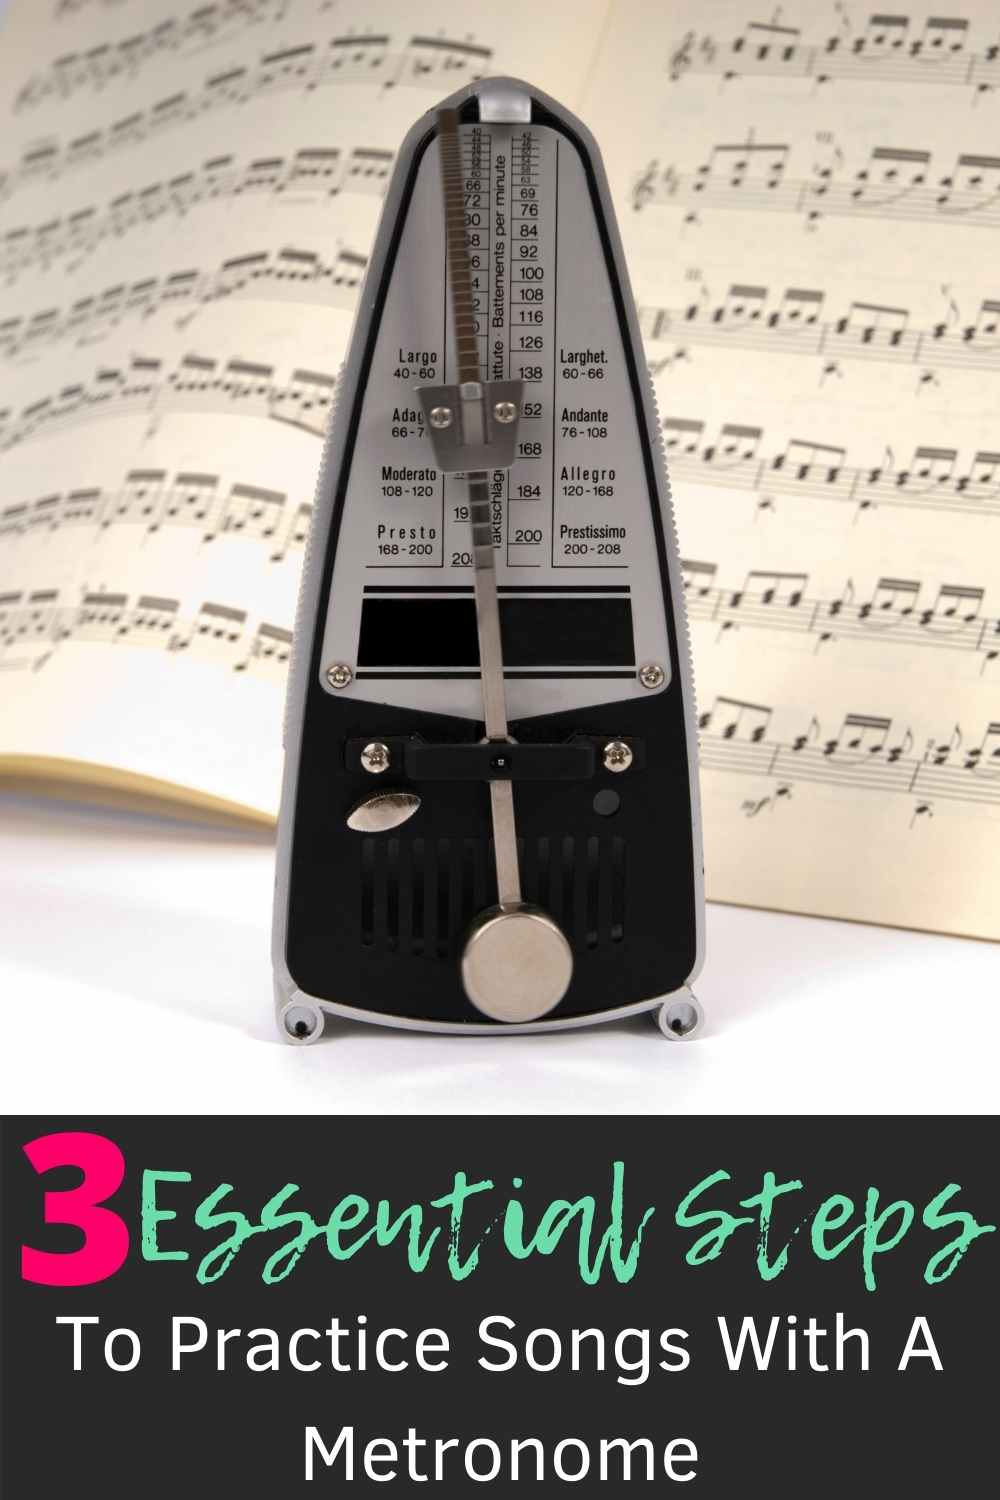 A metronome and a tab for efficient practice